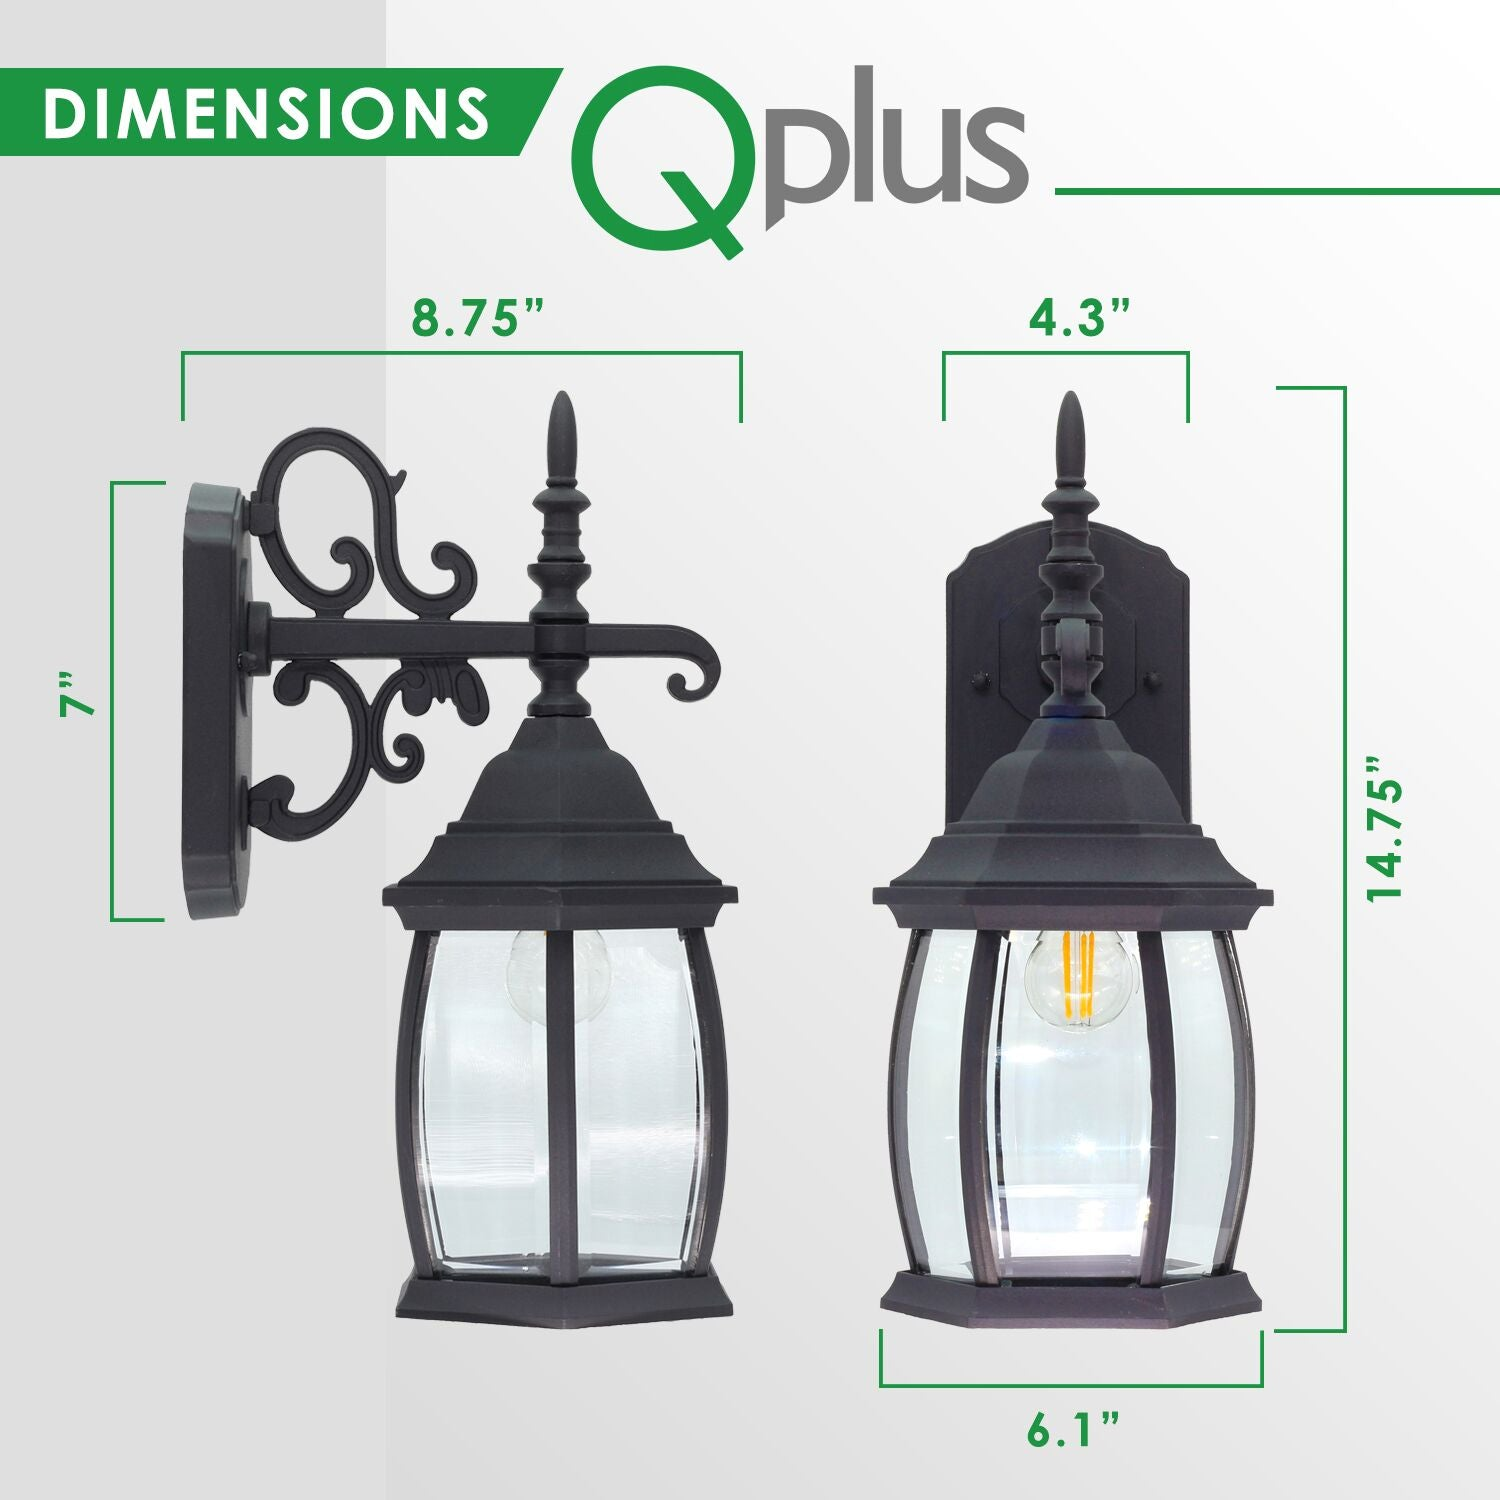 QPlus Porch Wall Lights/ Lanterns Elegant Architectural With Clear Glass Panels - Black/Bronze